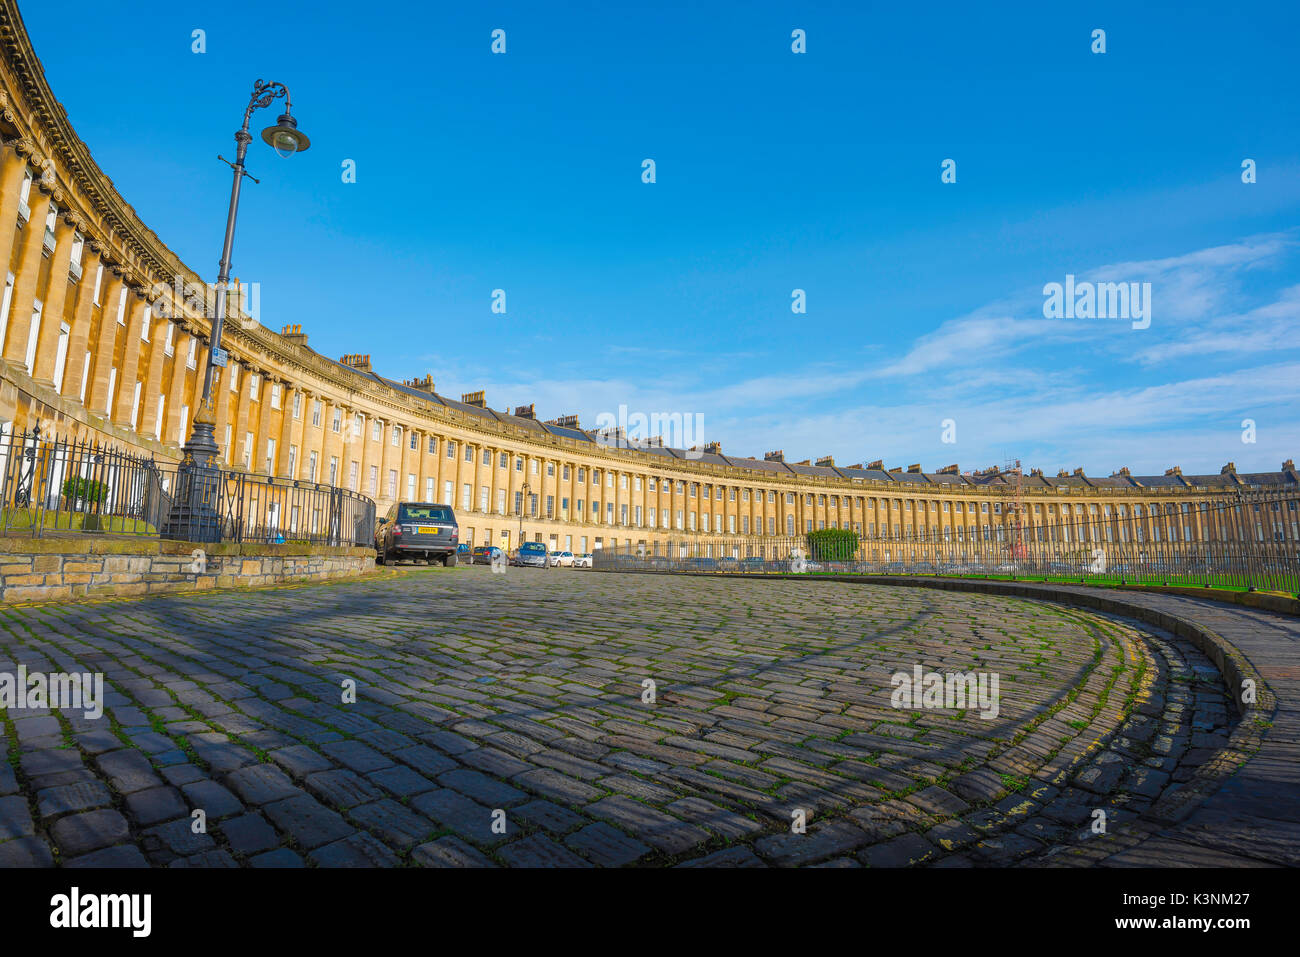 Bath Royal Crescent UK, vista de la Royal Crescent - una hilera de 30 casas en terrazas georgianas dispuestas en Foto de stock